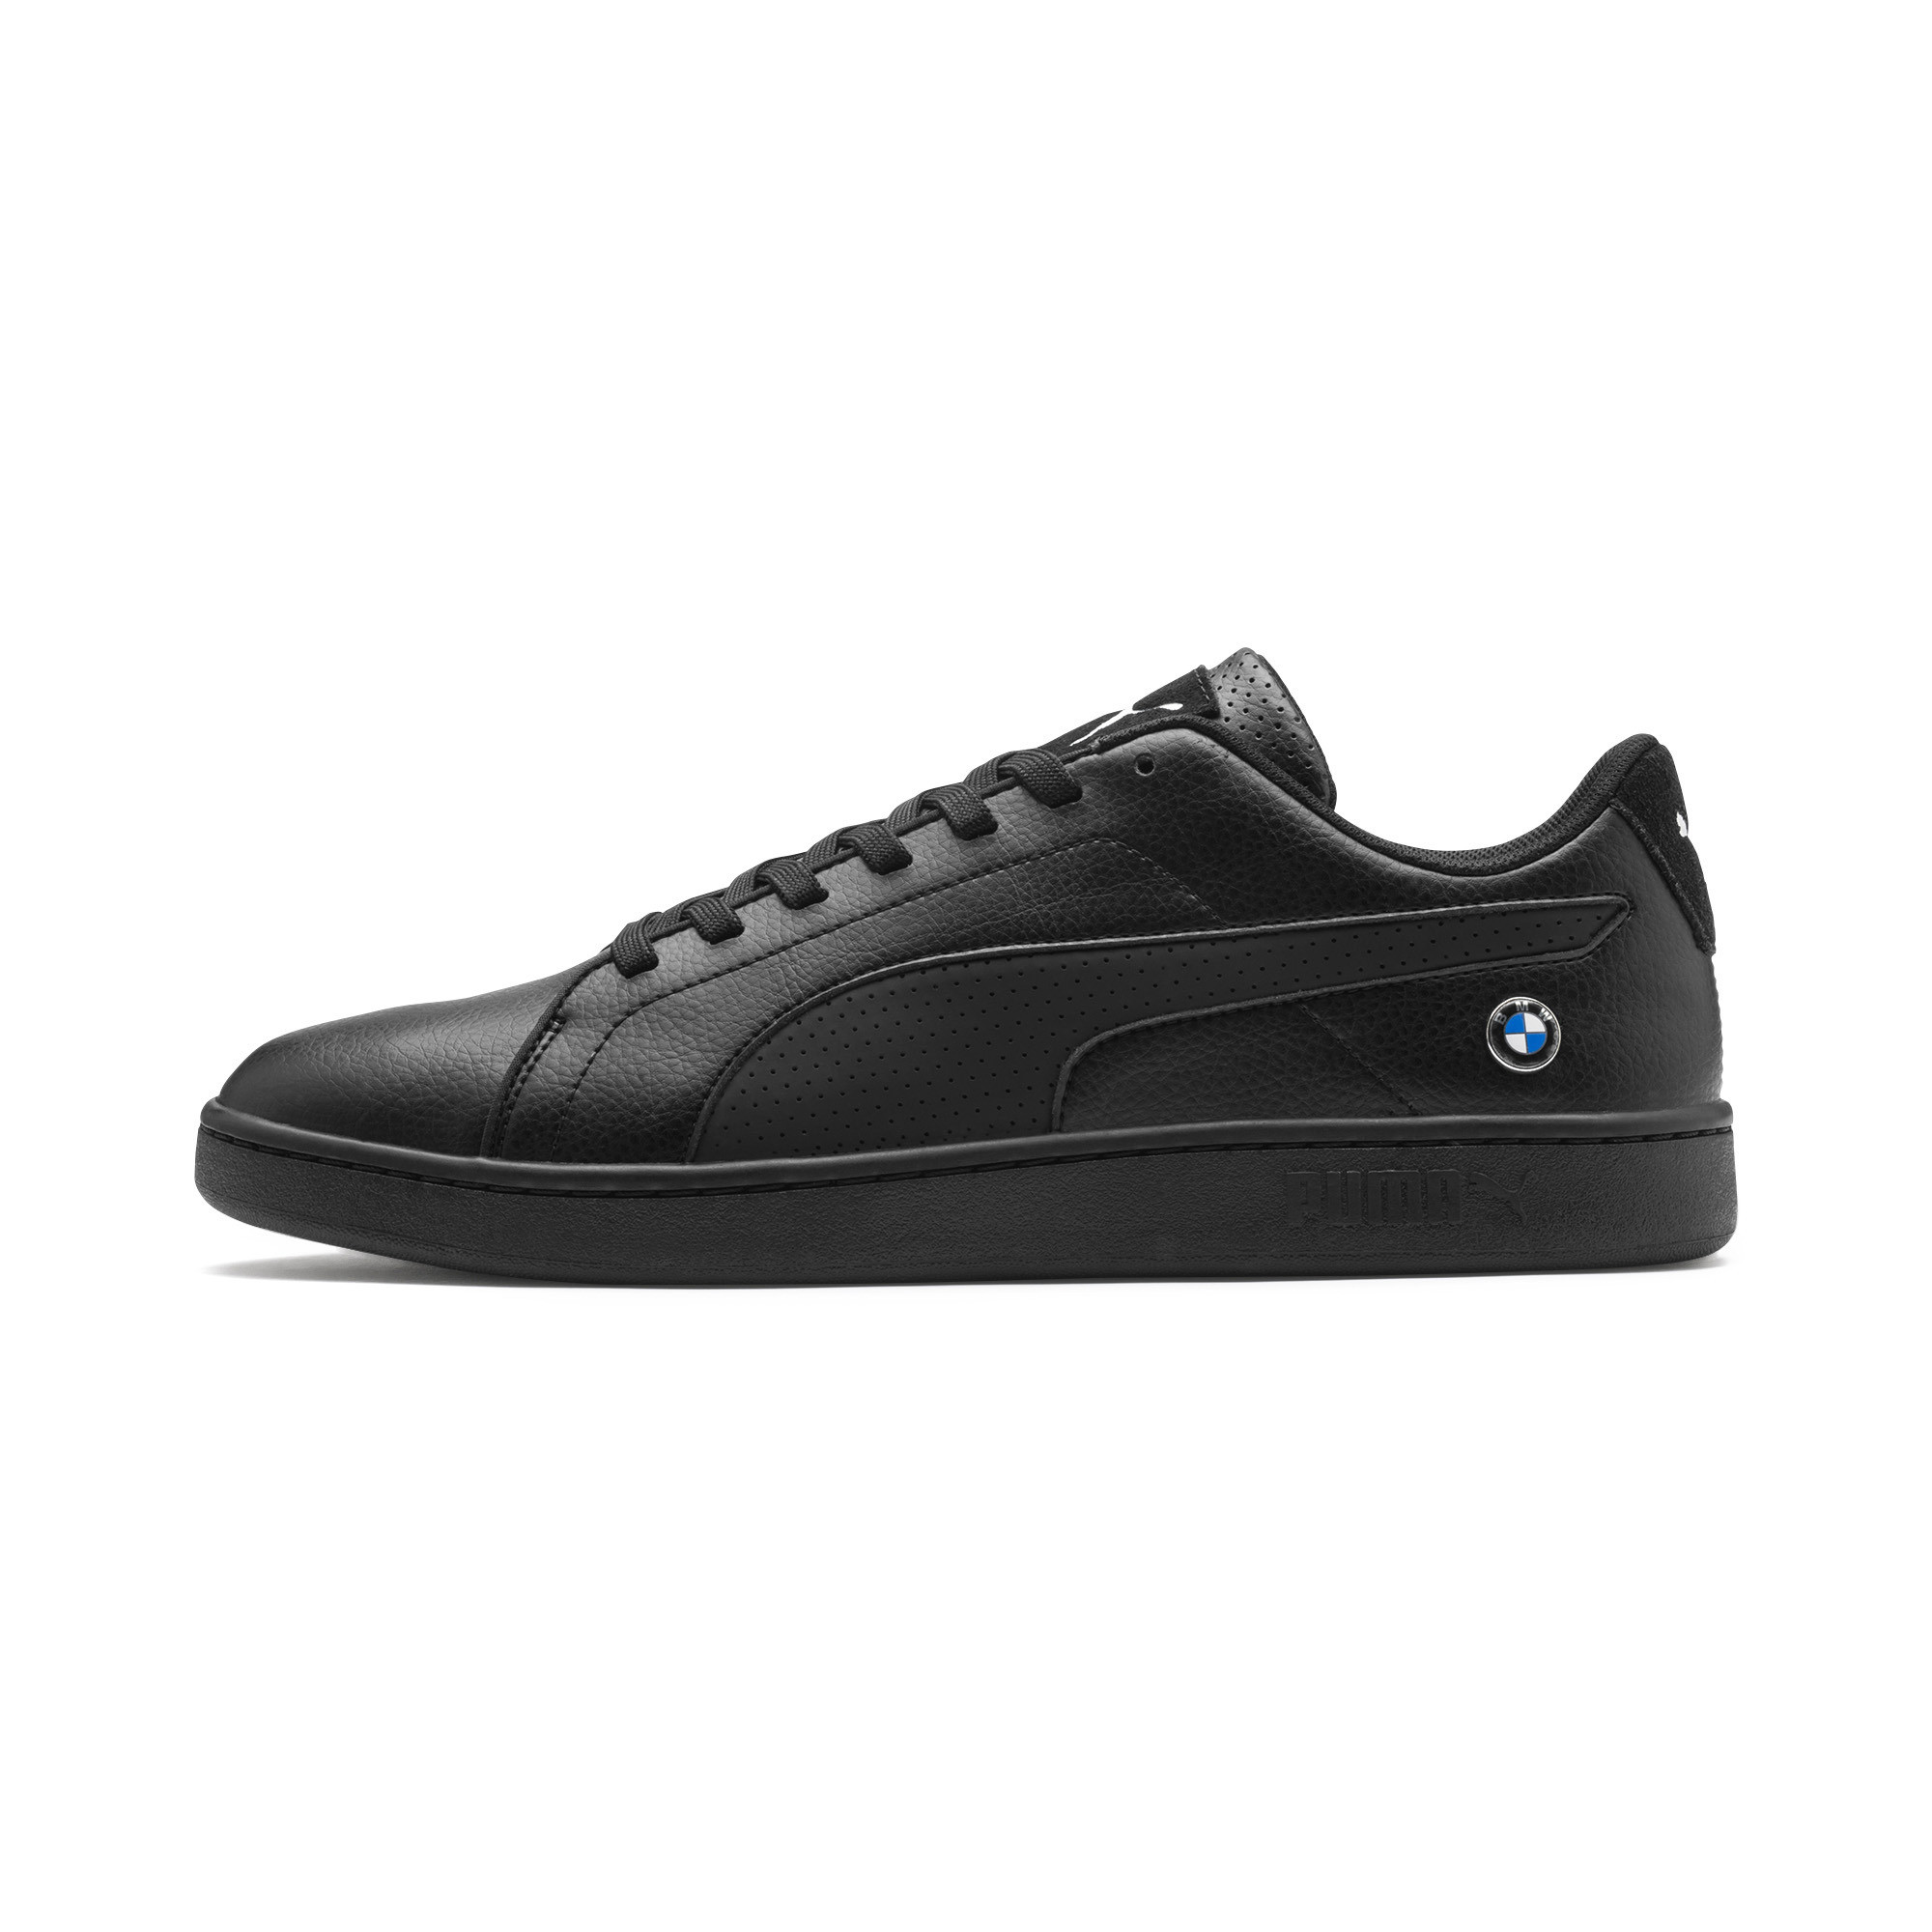 PUMA-BMW-M-Motorsport-Smash-v2-Men-039-s-Sneakers-Men-Shoe-Auto miniatura 22